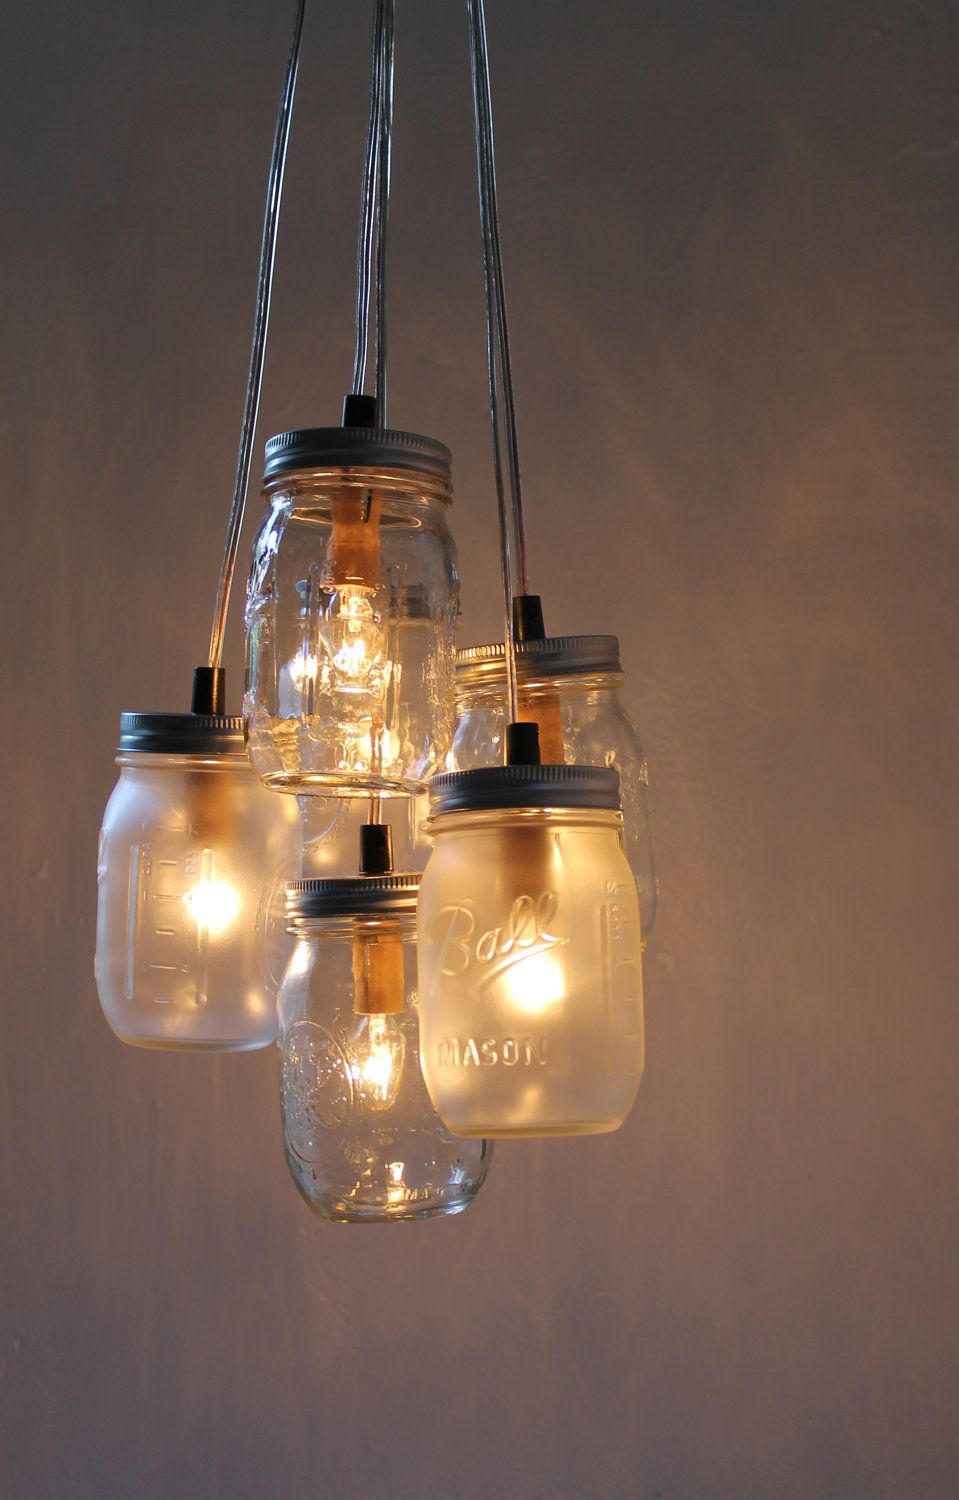 Hanging Mason Jar Lighting Fixture